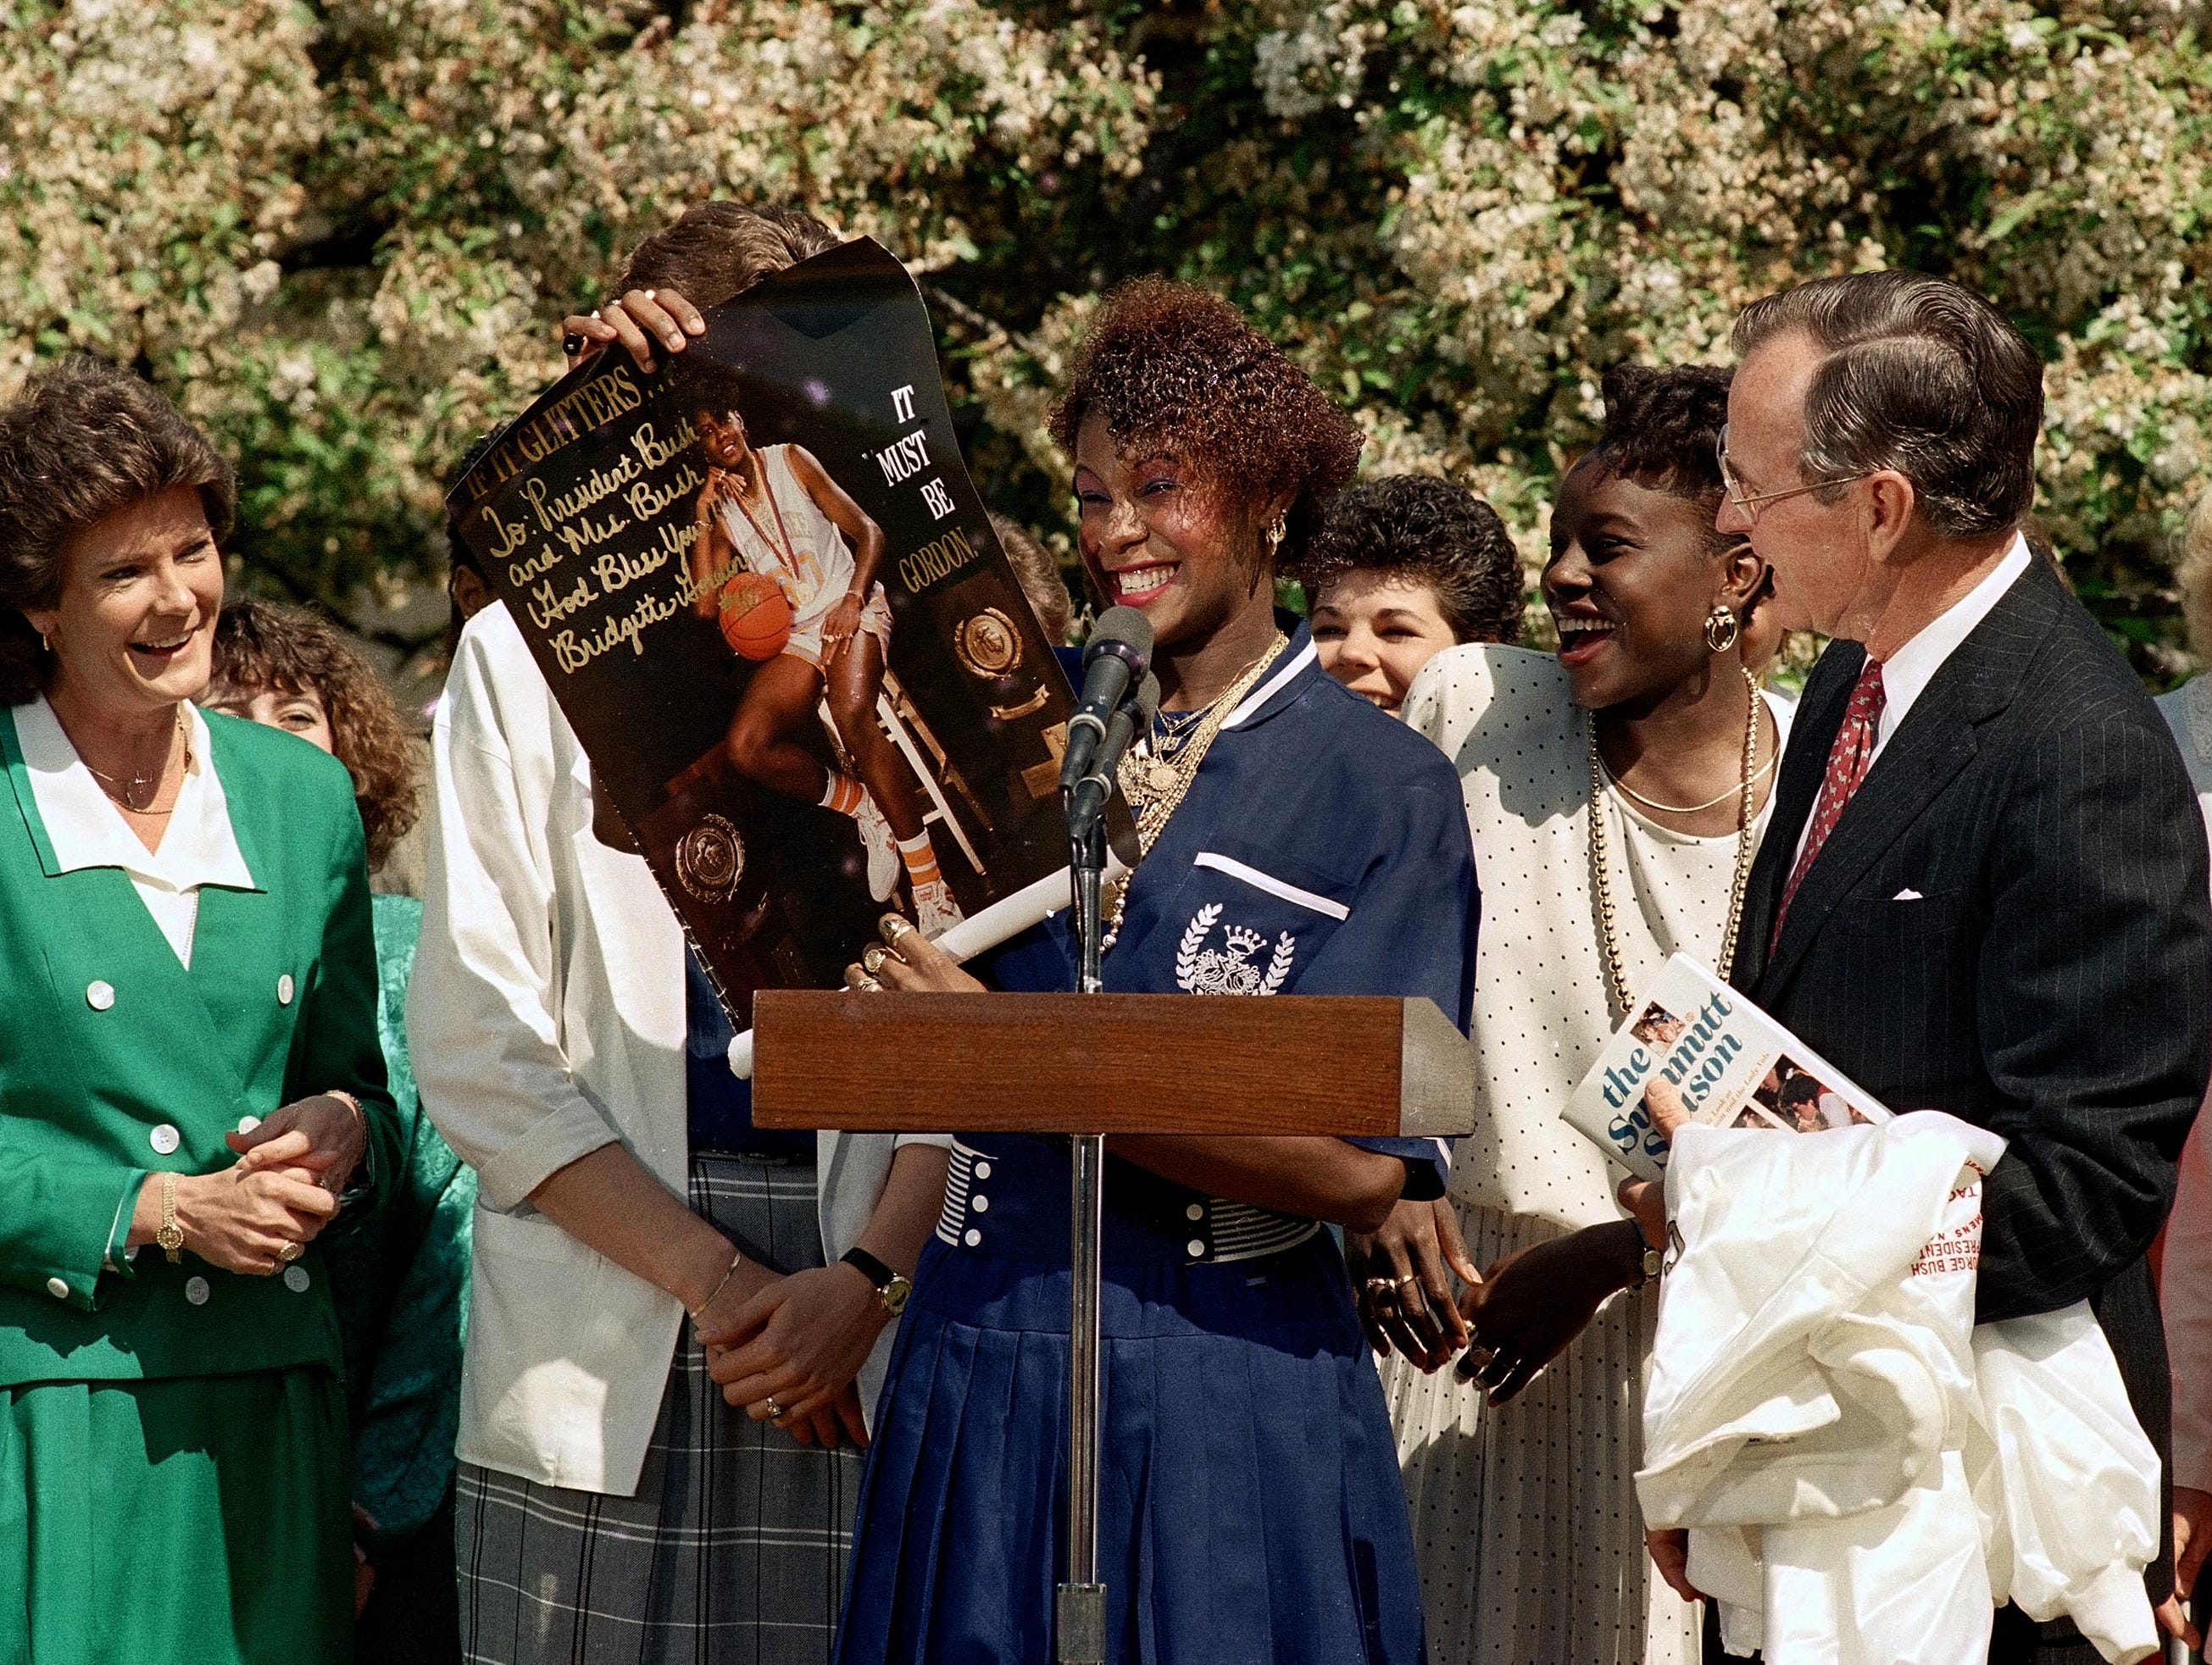 Lady Vol Bridgette Gordon presents President George Bush with a poster during a celebration of Tennessee's NCAA national championship on April 20, 1989 at the White House. At left is Coach Pat Summitt.